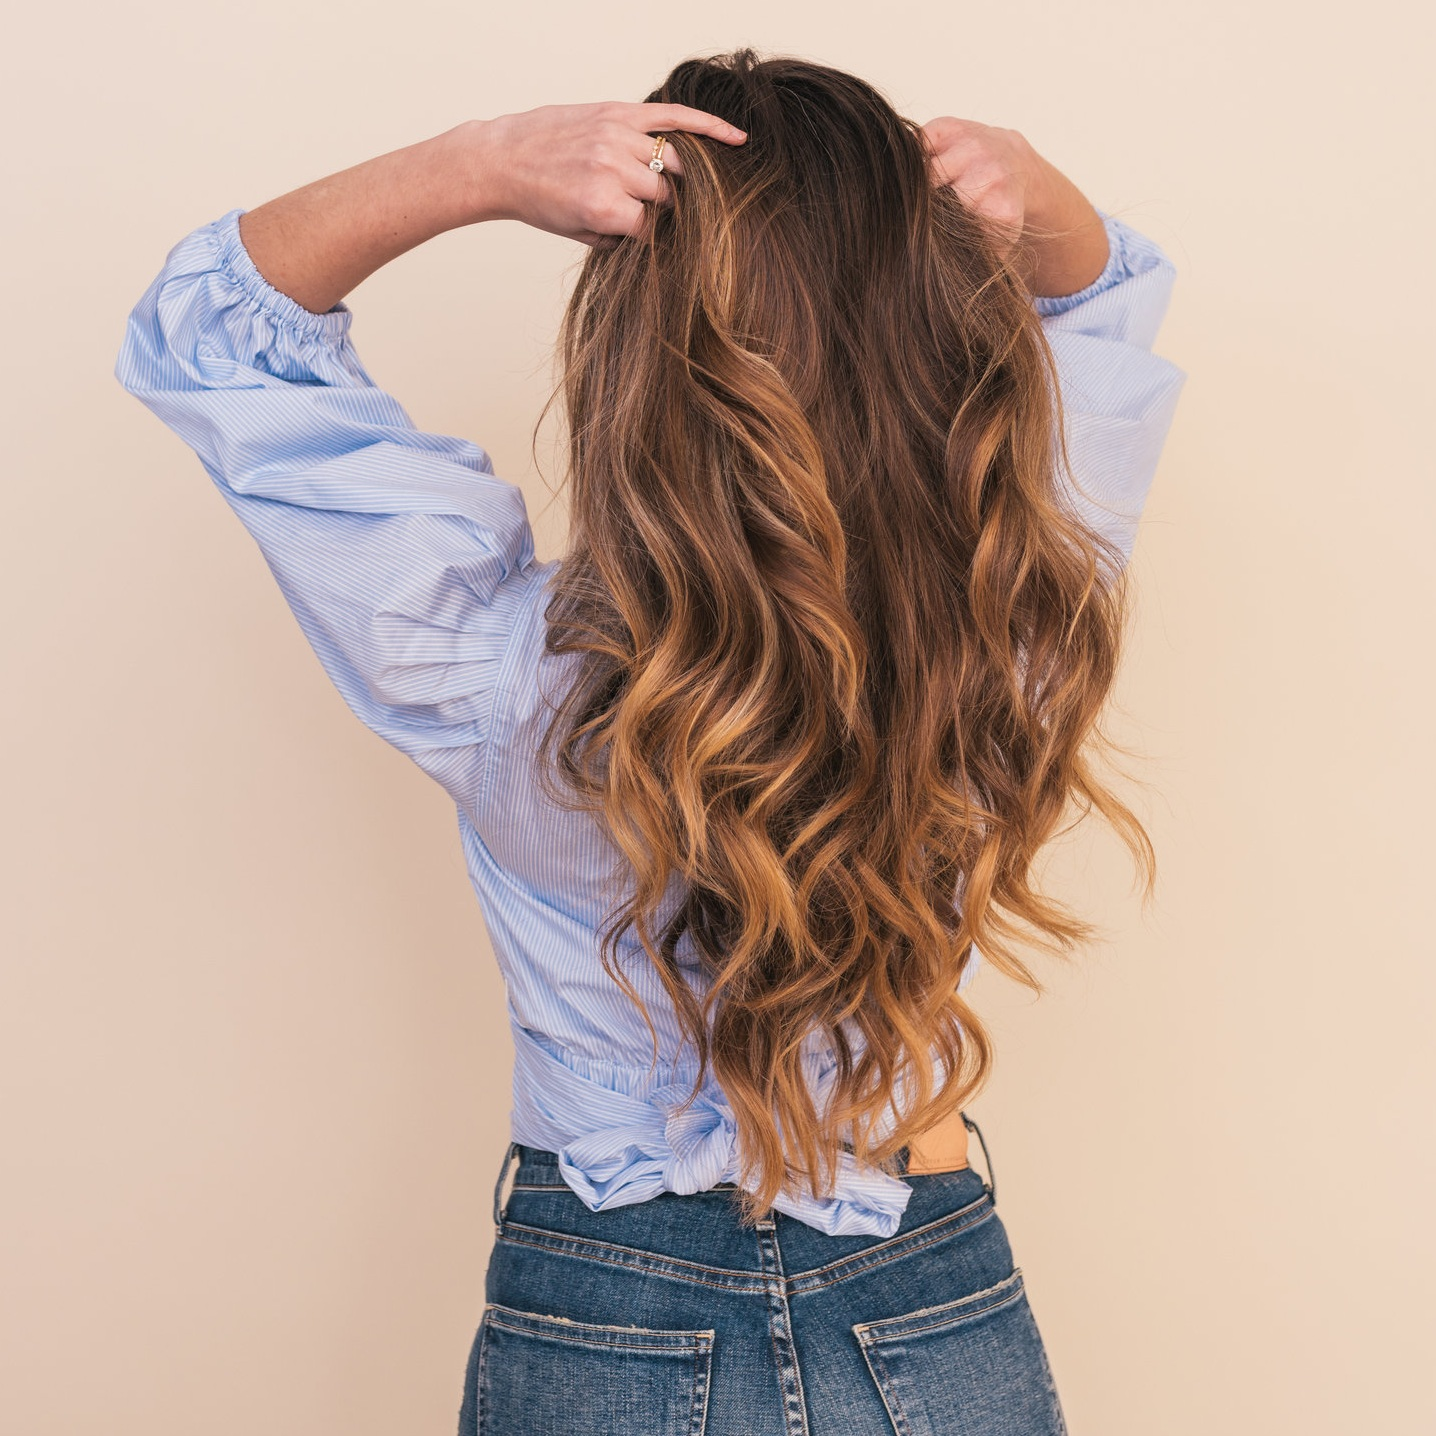 MOre Length, More Volume - Change Everything With a Single Salon Service